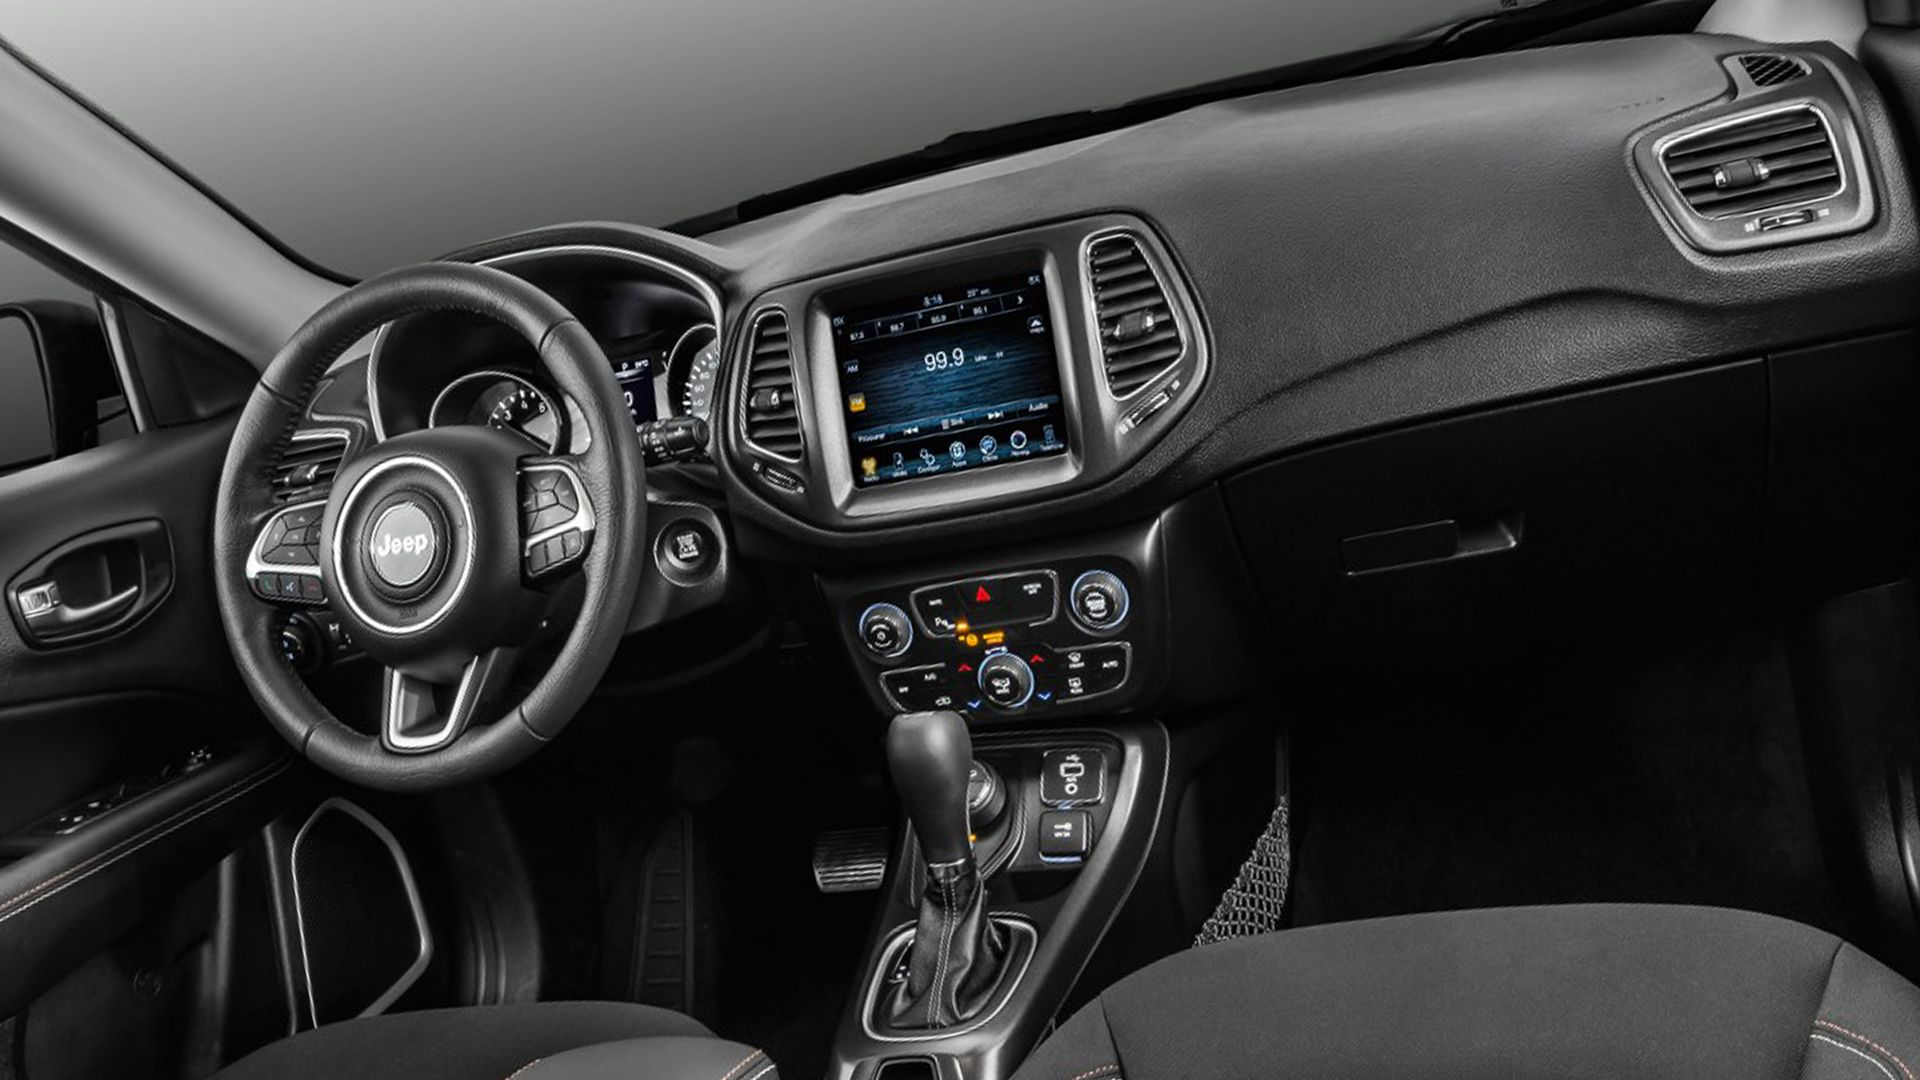 2019 Jeep Compass Interior Design